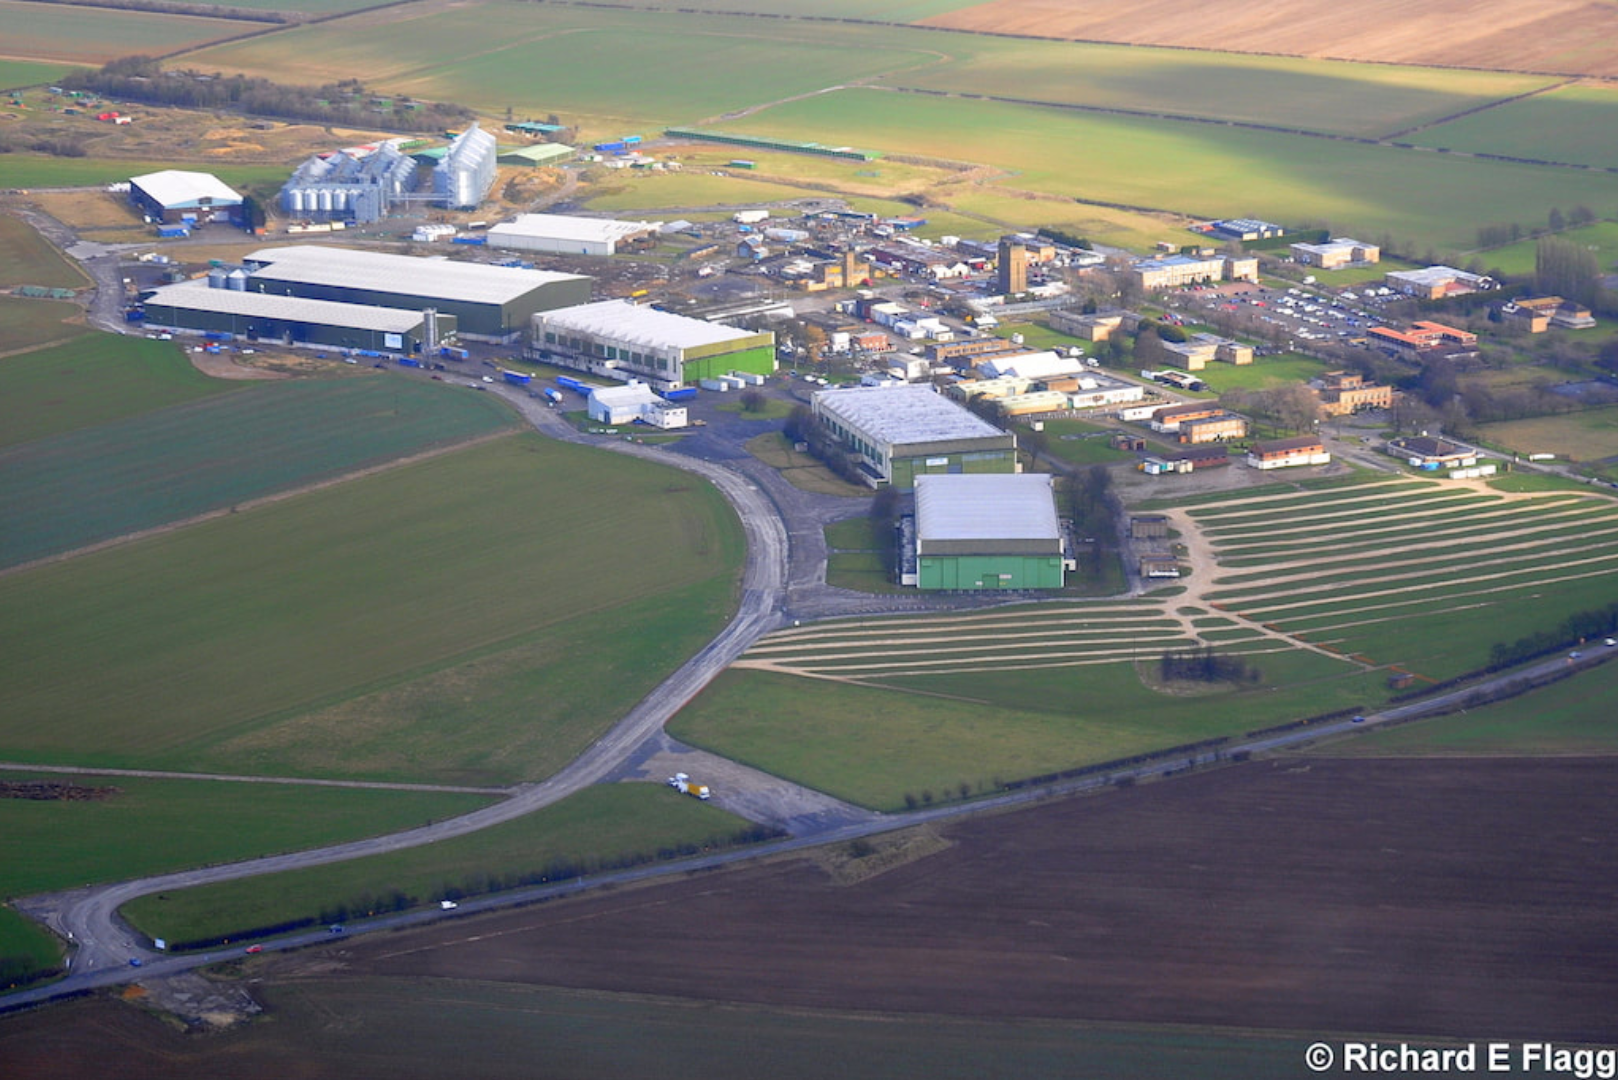 012Aerial View of RAF Hemswell Airfield - 12 February 2011.png